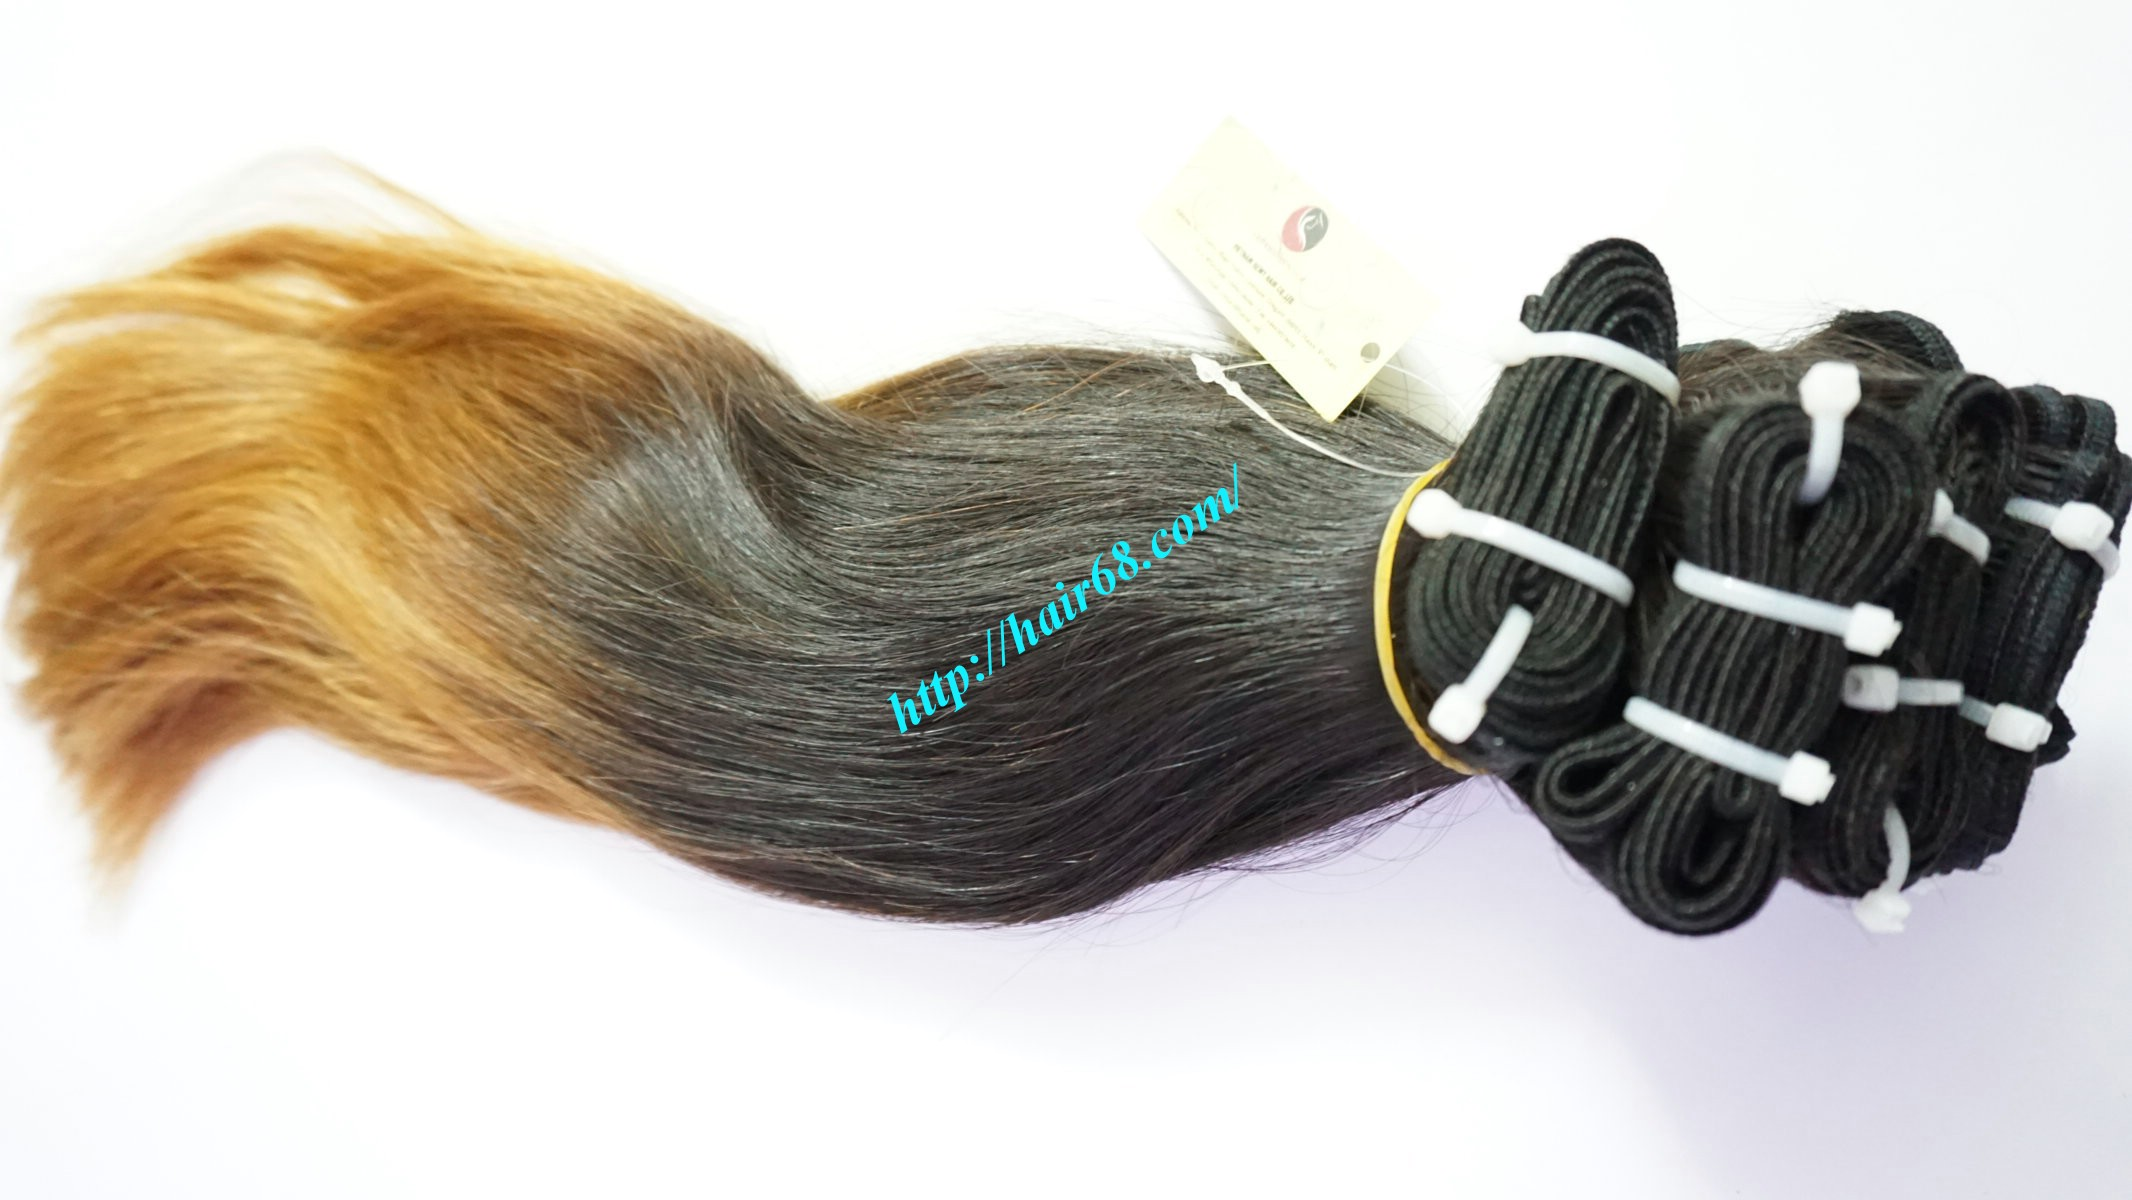 26 inch remy ombre hair extensions vietnam hair 7